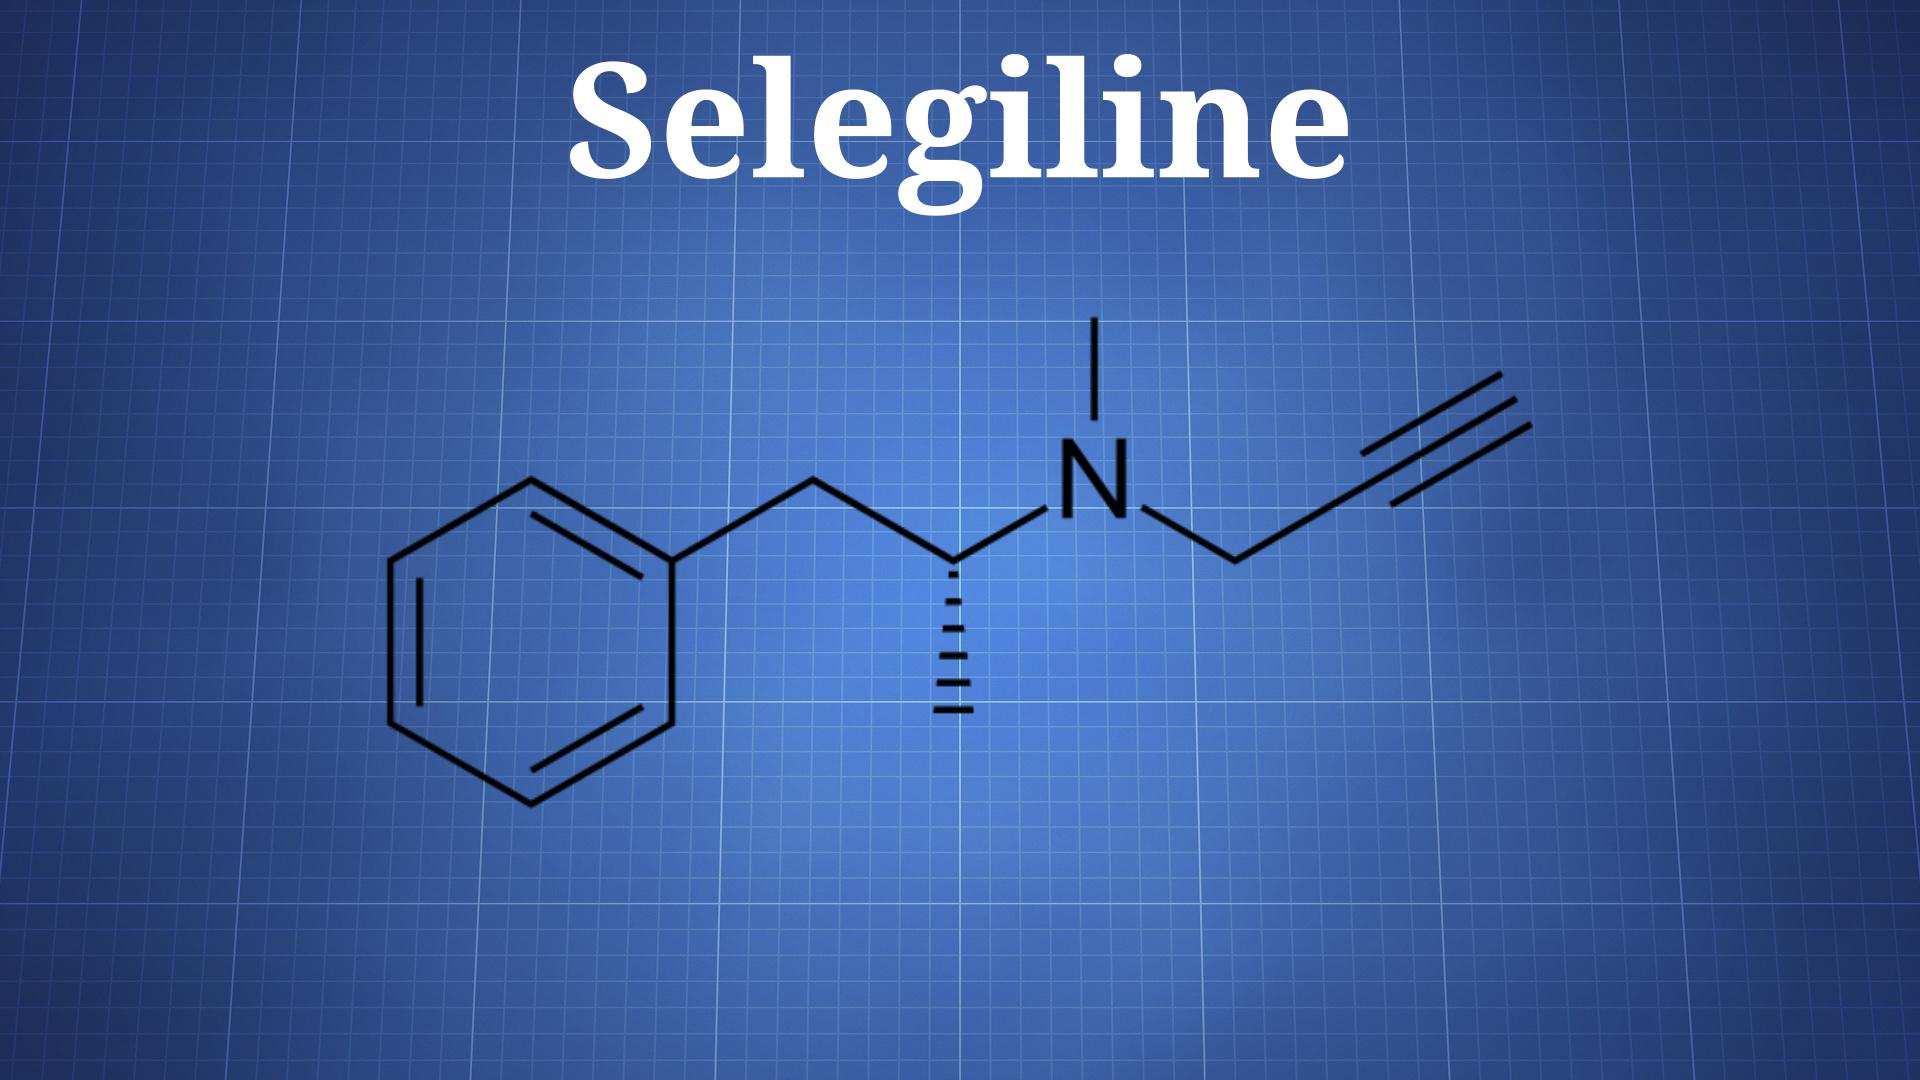 Selegiline Reviews pics